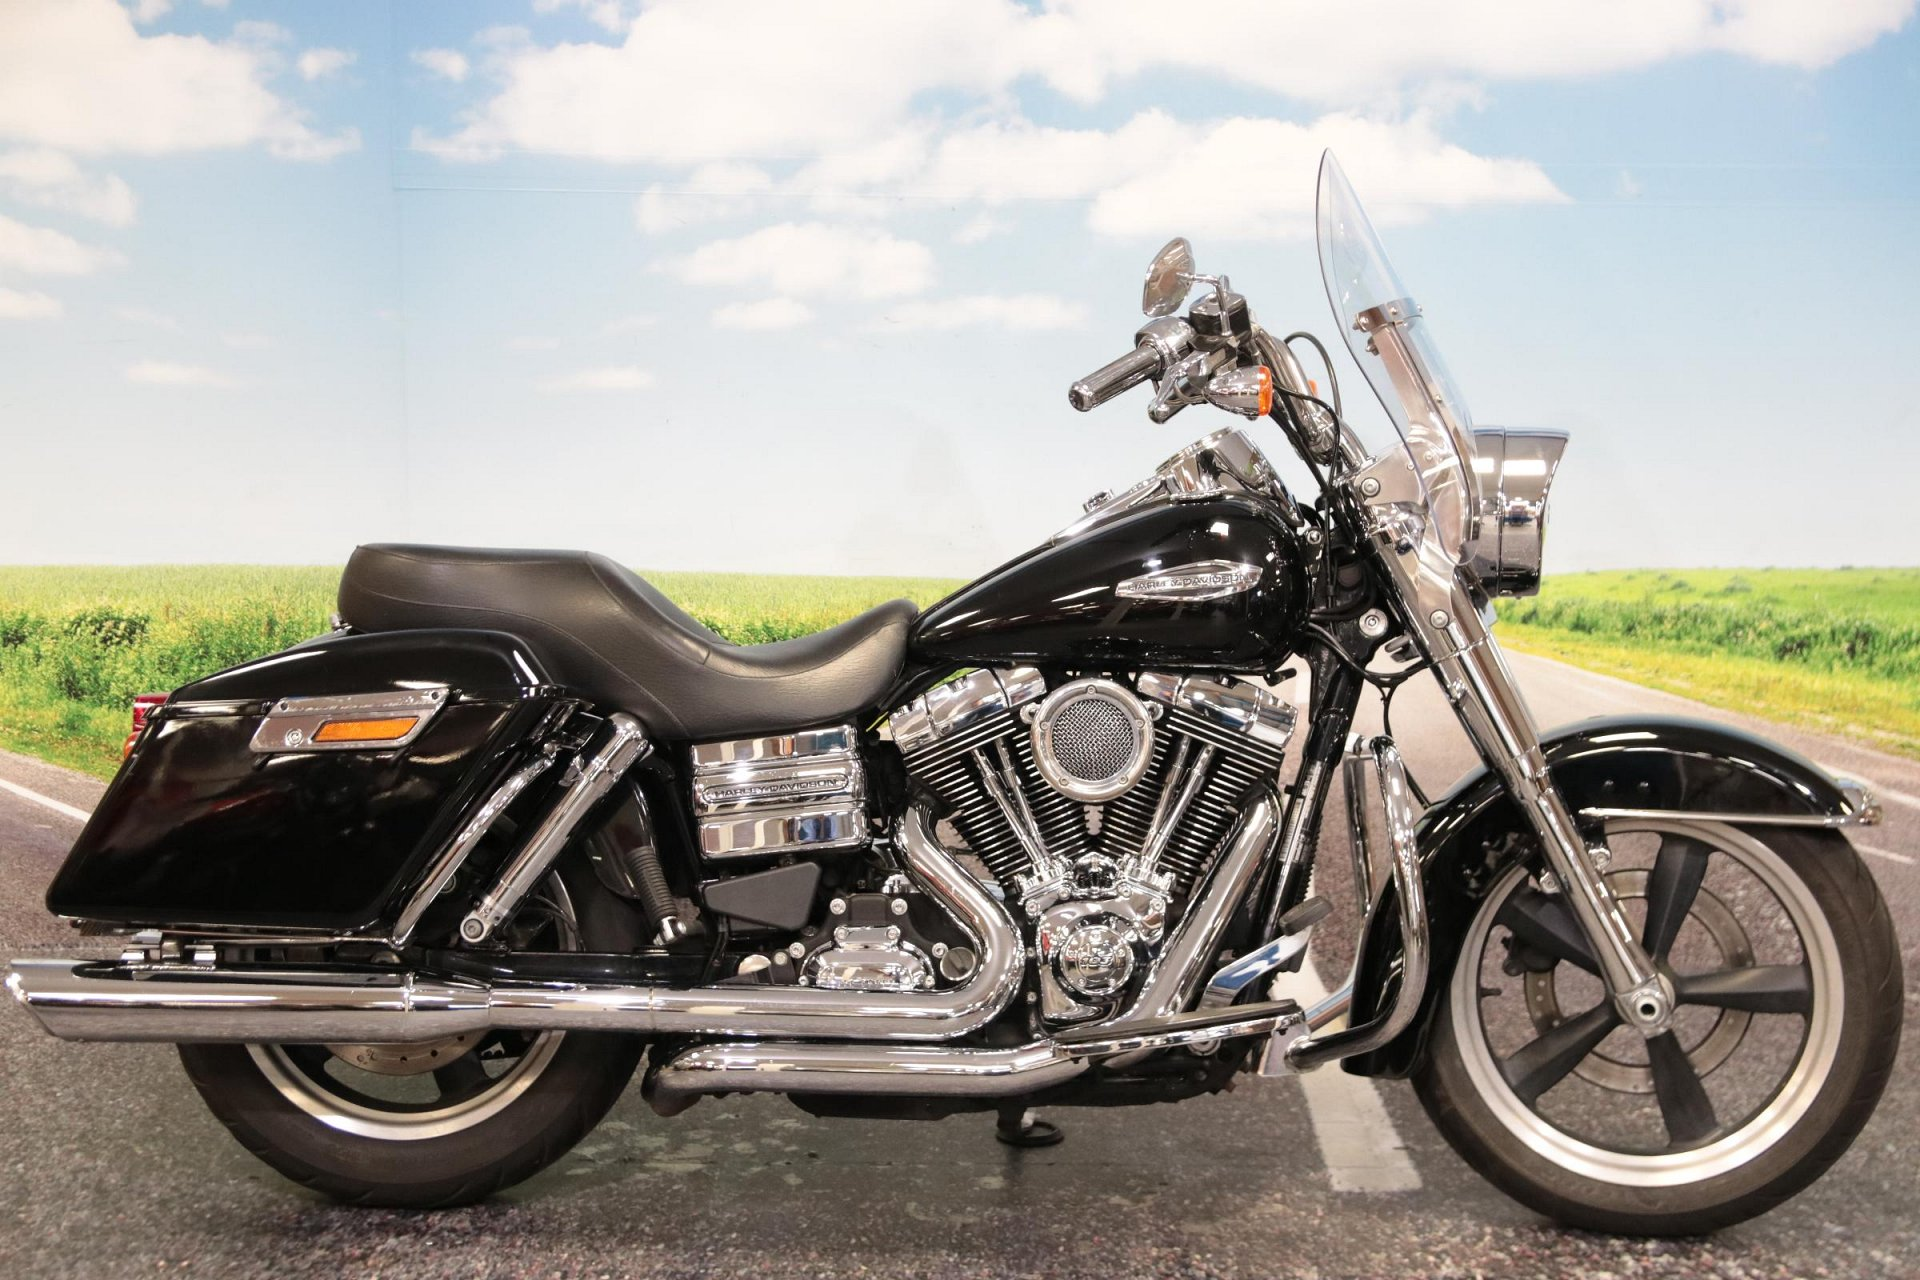 2015 Harley Davidson FLD 103 Switchback 1690 for sale in South Wales